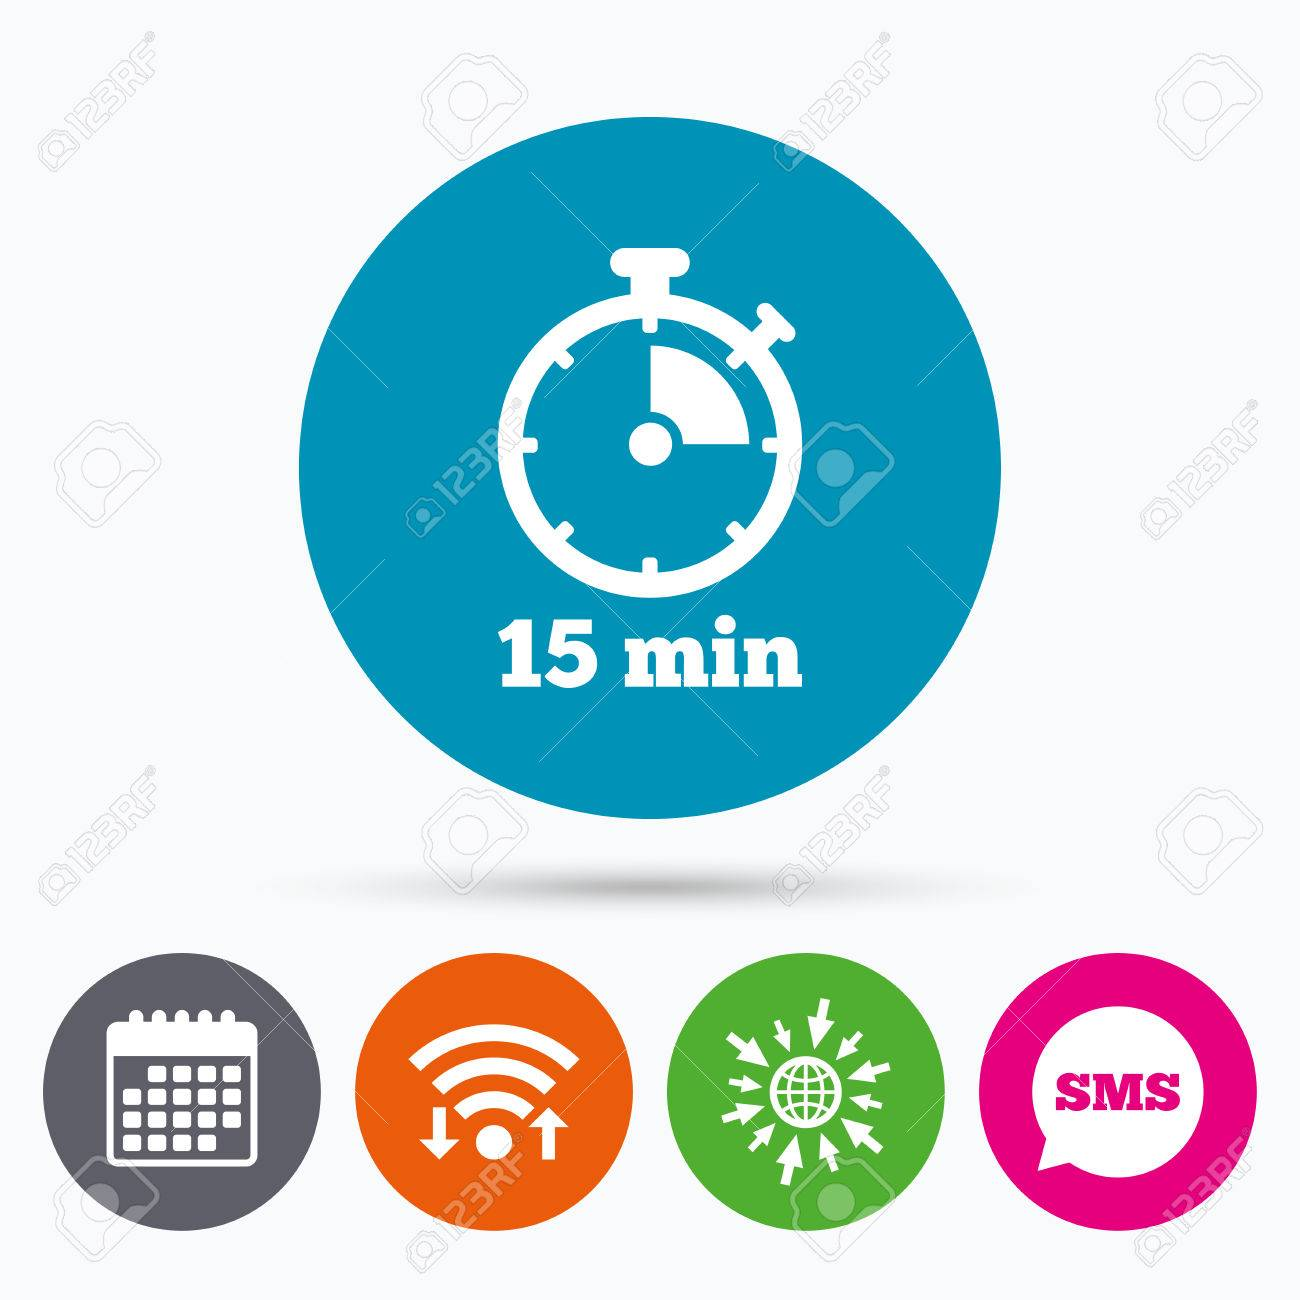 Wifi, Sms and calendar icons  Timer sign icon  15 minutes stopwatch